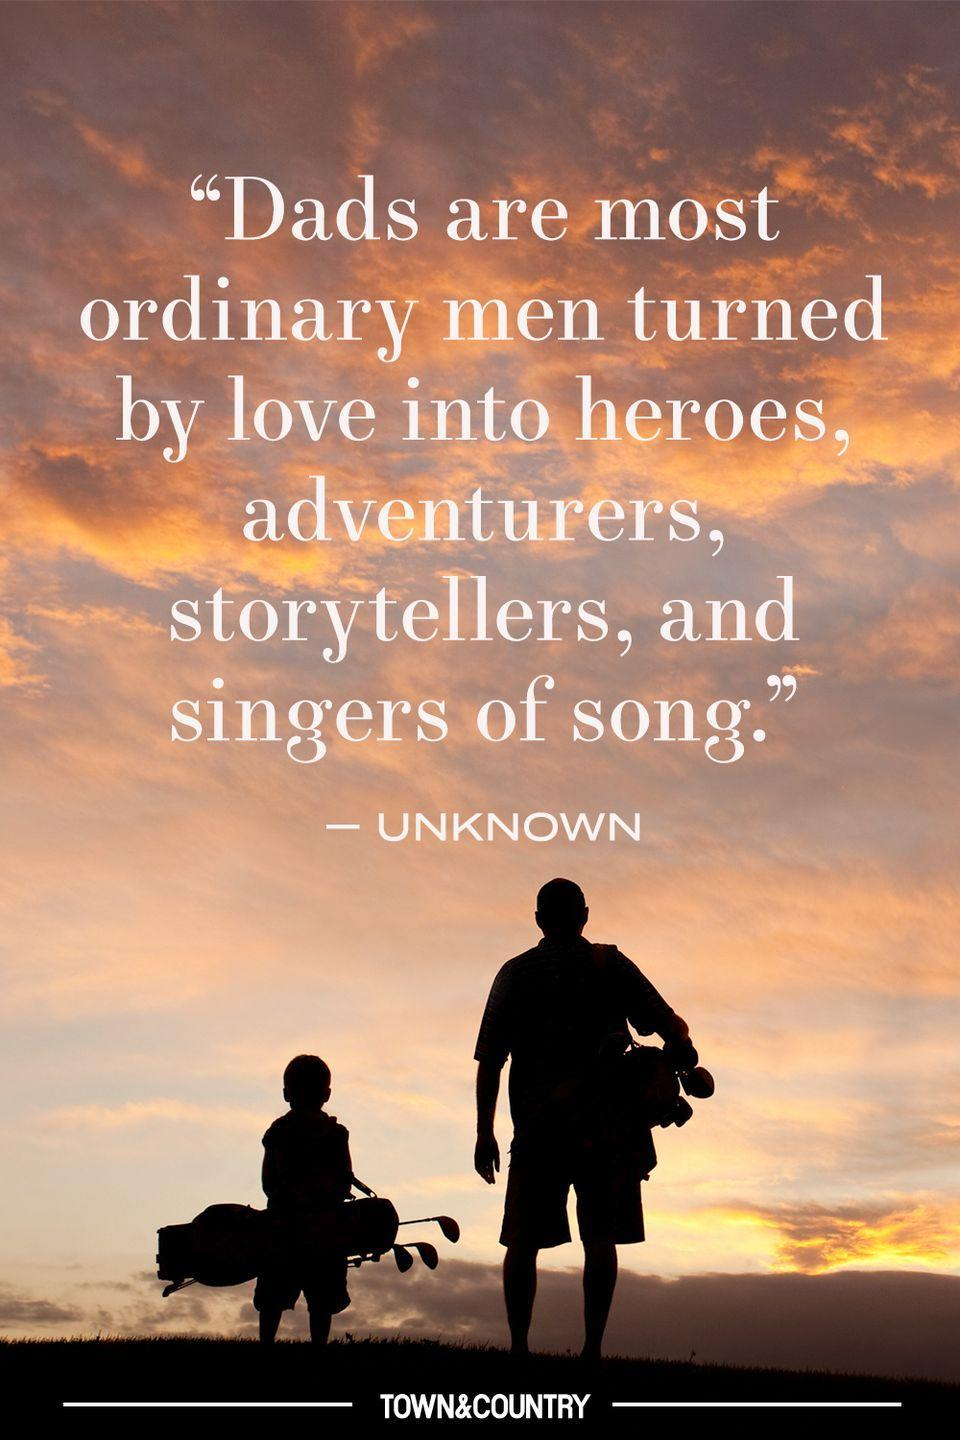 "<p>""Dads are most ordinary men turned by love into heroes, adventurers, storytellers, and singers of song."" </p><p>– Unknown </p>"